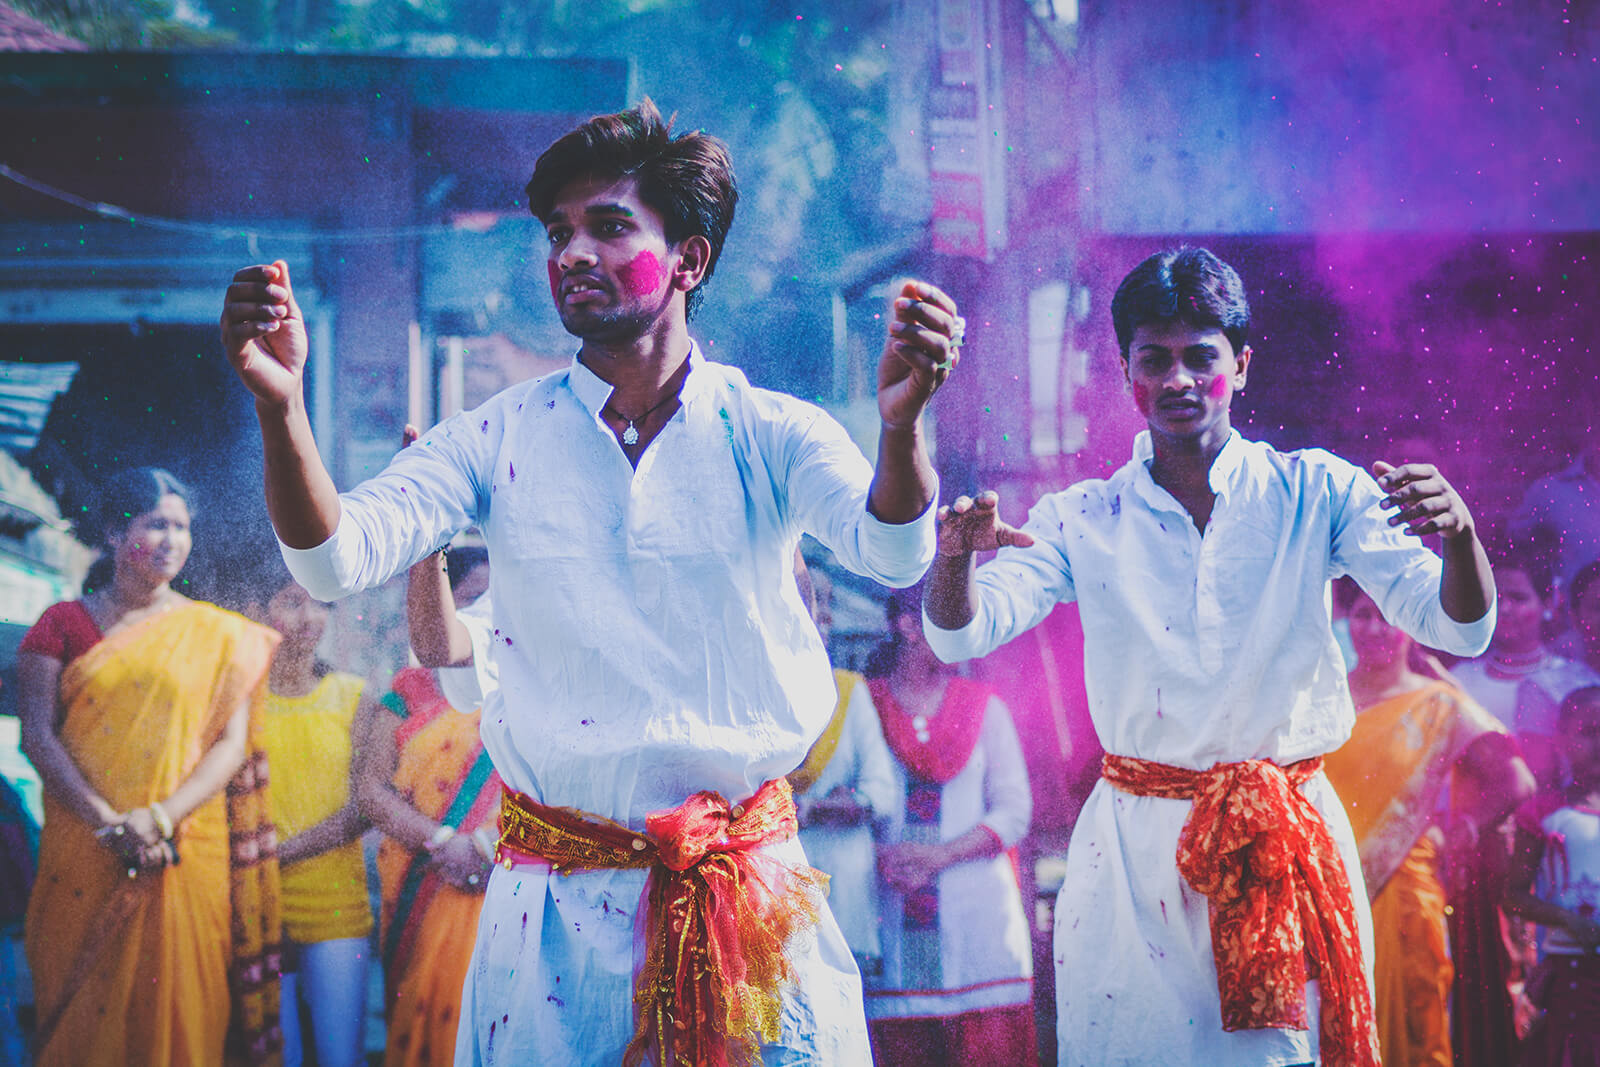 Holi festival in Kolkata, the most colorful Indian holiday